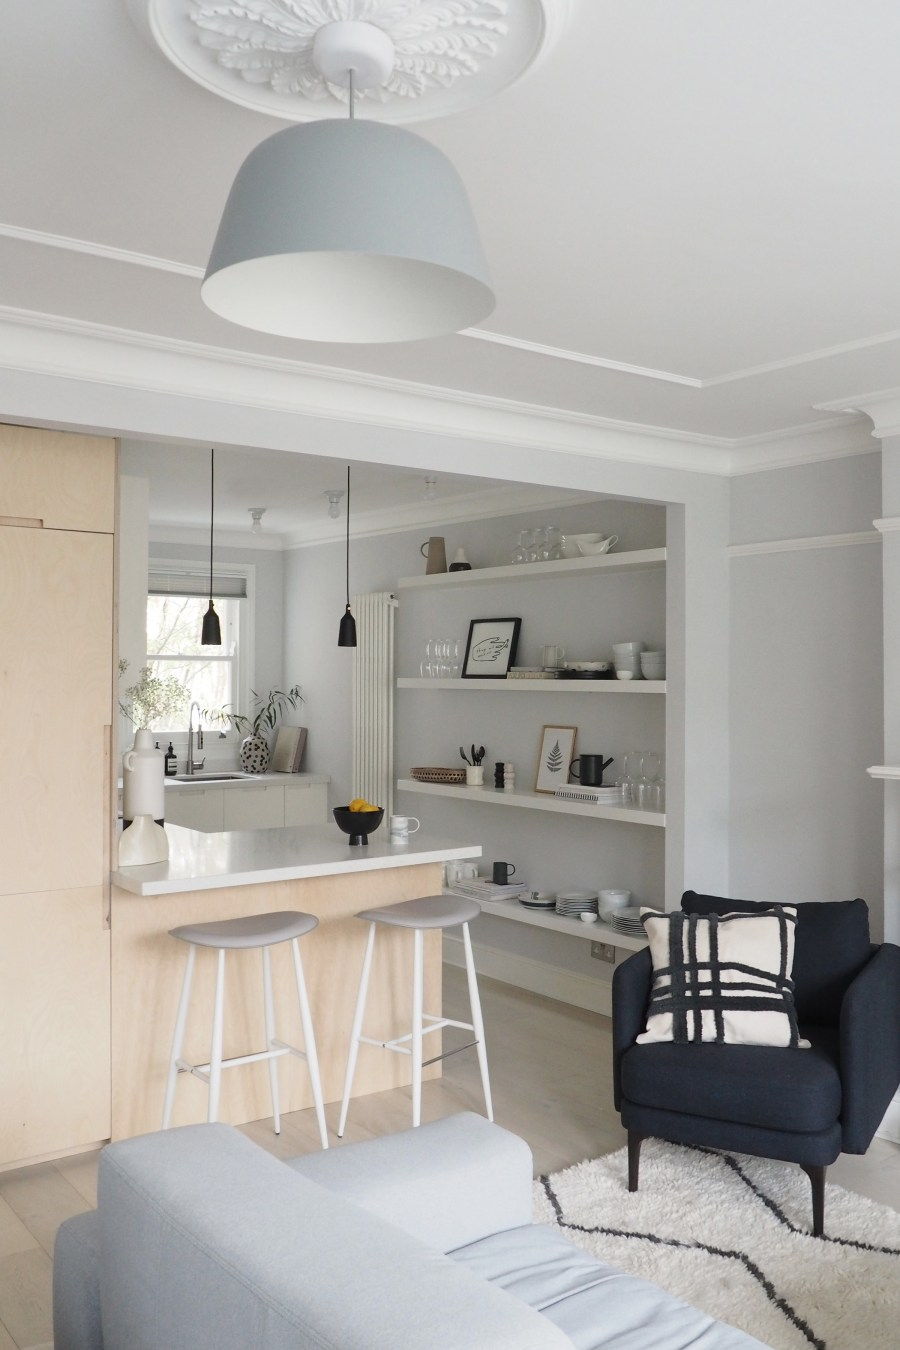 New interior project: a light-filled, minimalist kitchen and ...